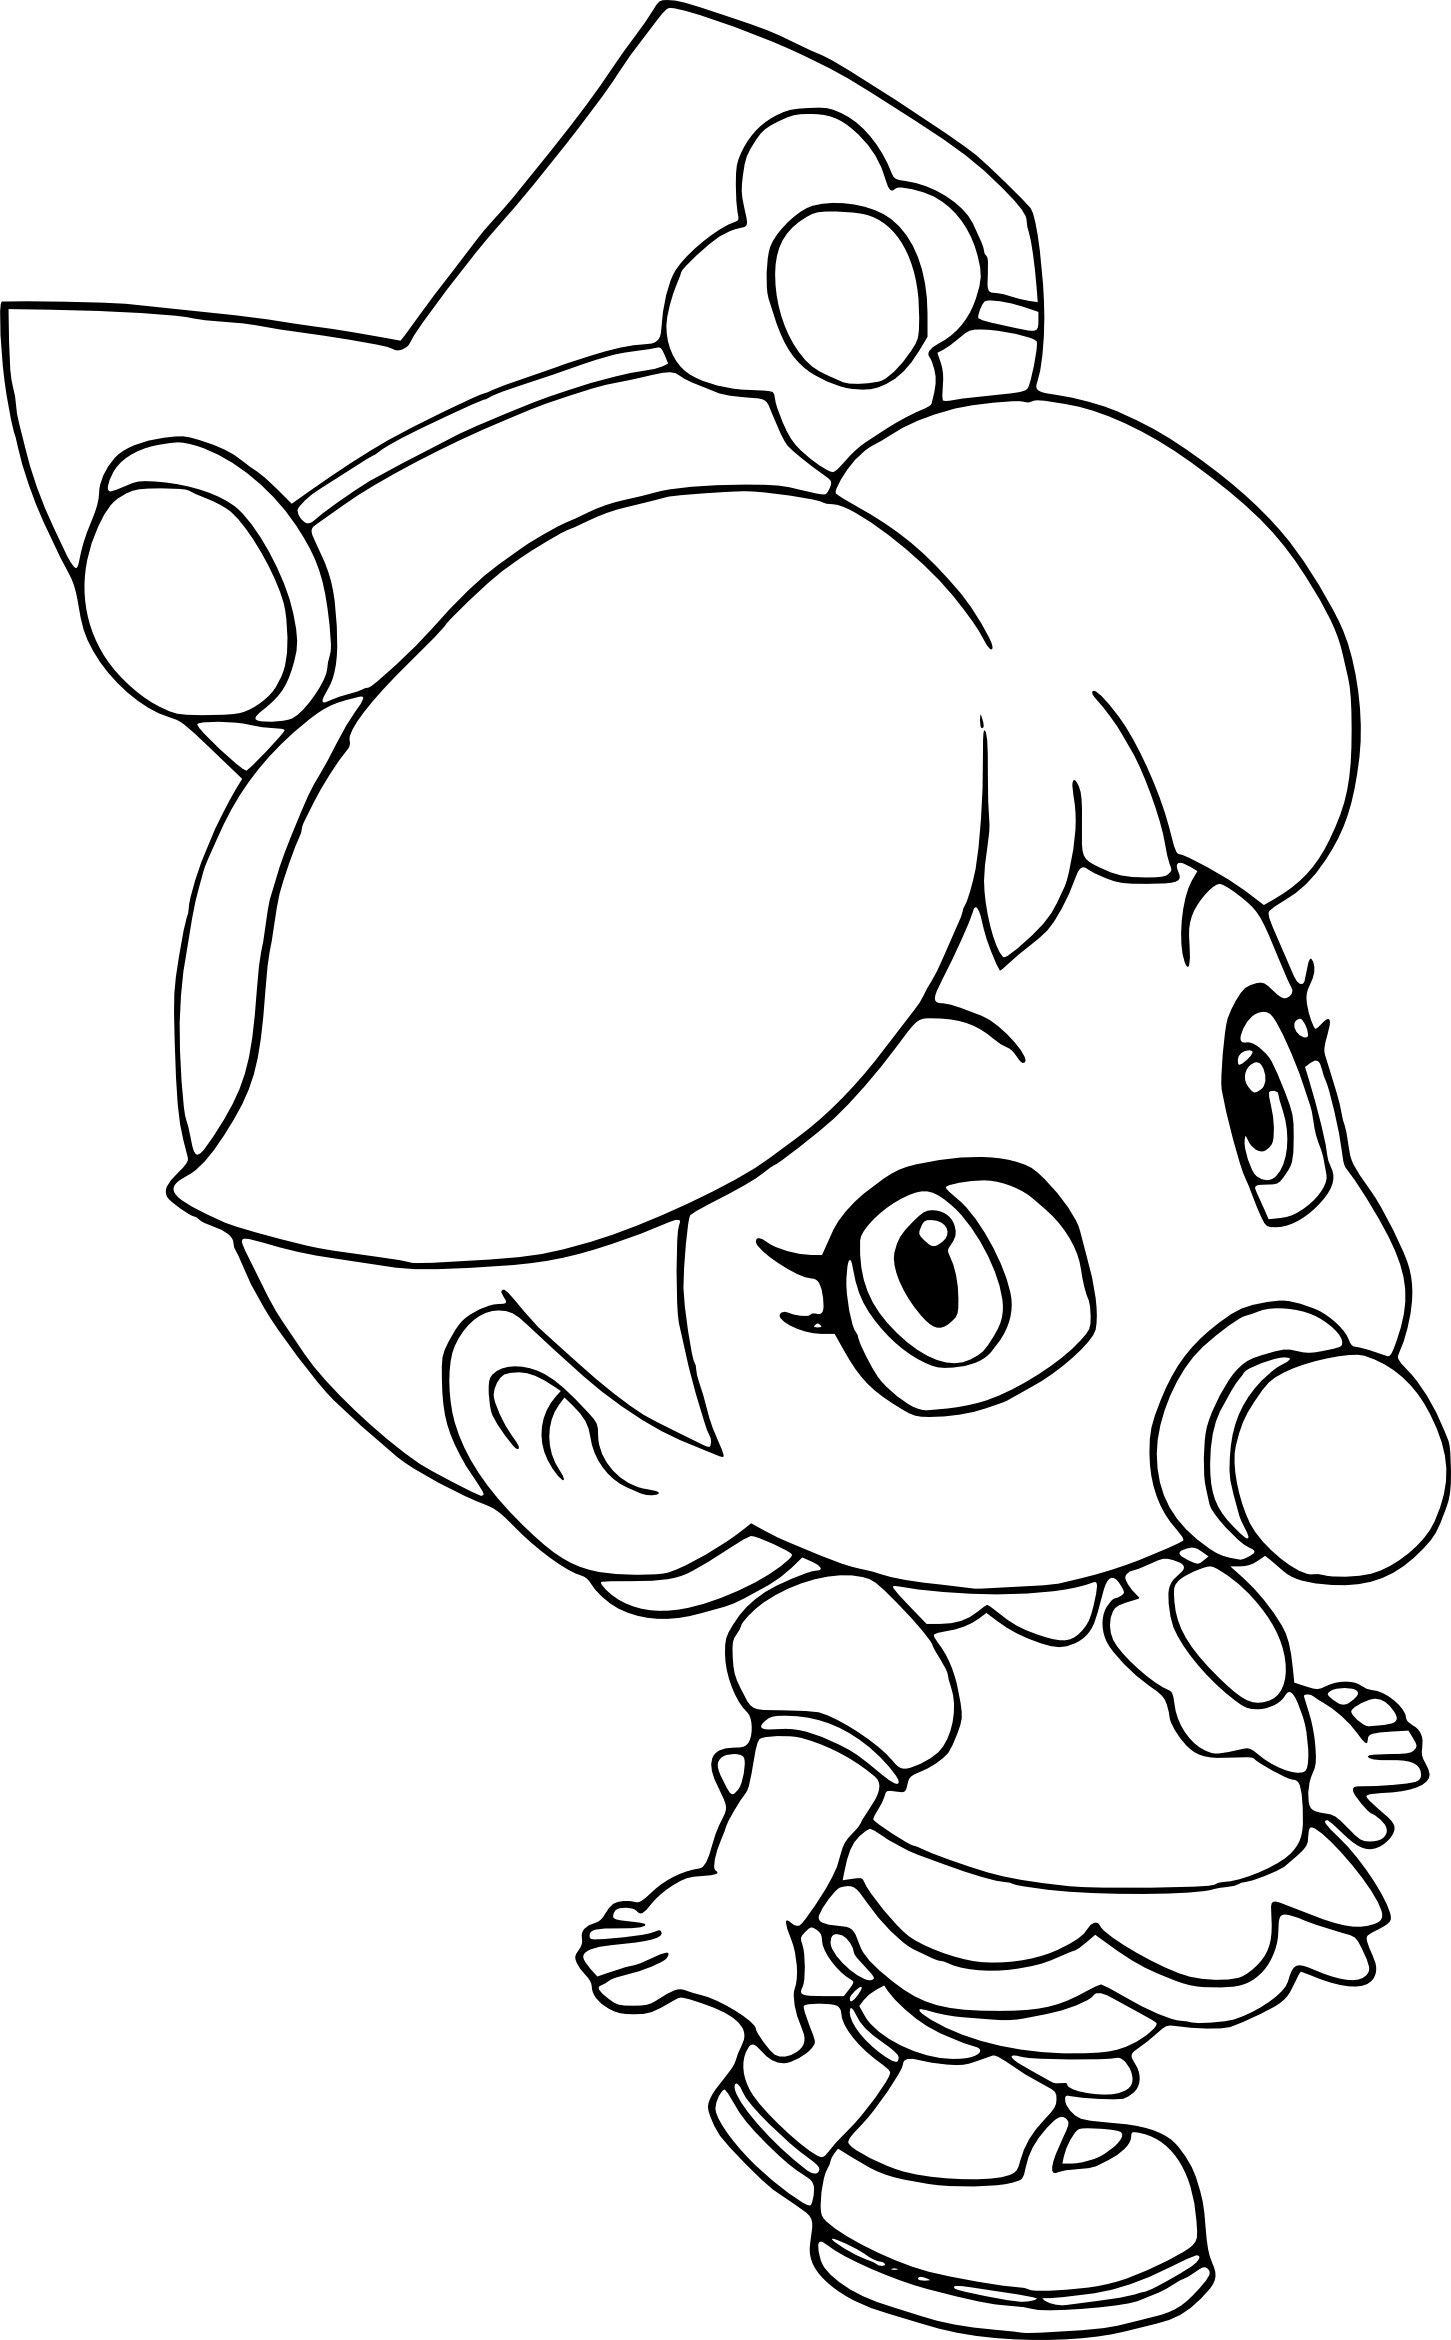 Coloring Mario Bros Princess Peach Princess Coloring Pages Mario Coloring Pages Baby Coloring Pages